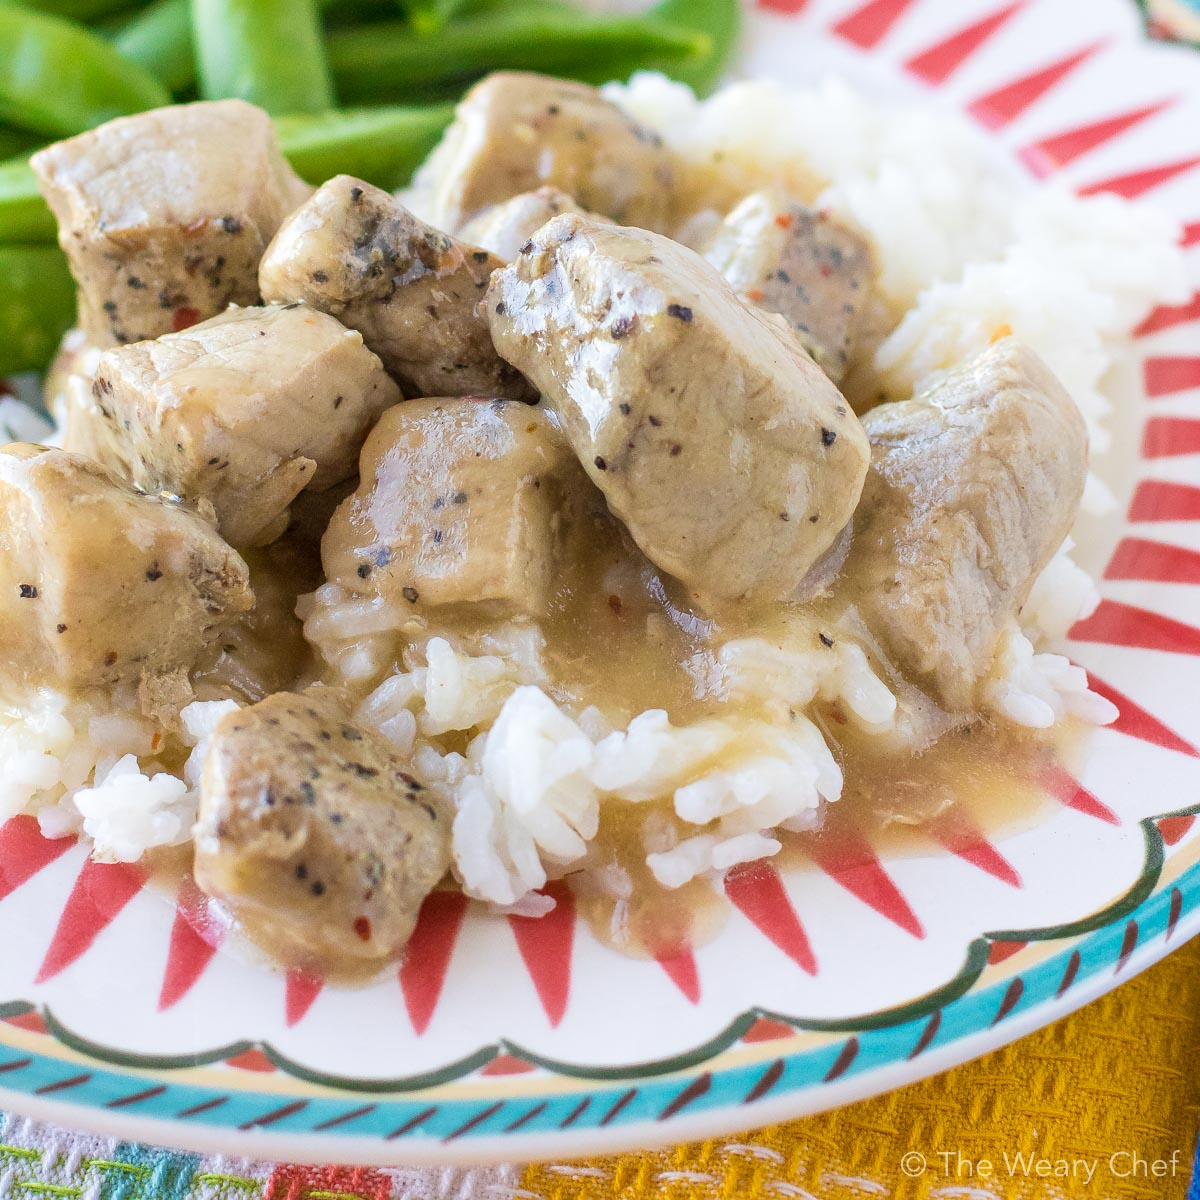 Four-ingredient Pork Tips with Gravy might be my favorite pork recipe ever, and that's saying a lot! This meal is so simple and delicious that you'll want to put it on your menu every week. #pork #gravy #easydinner